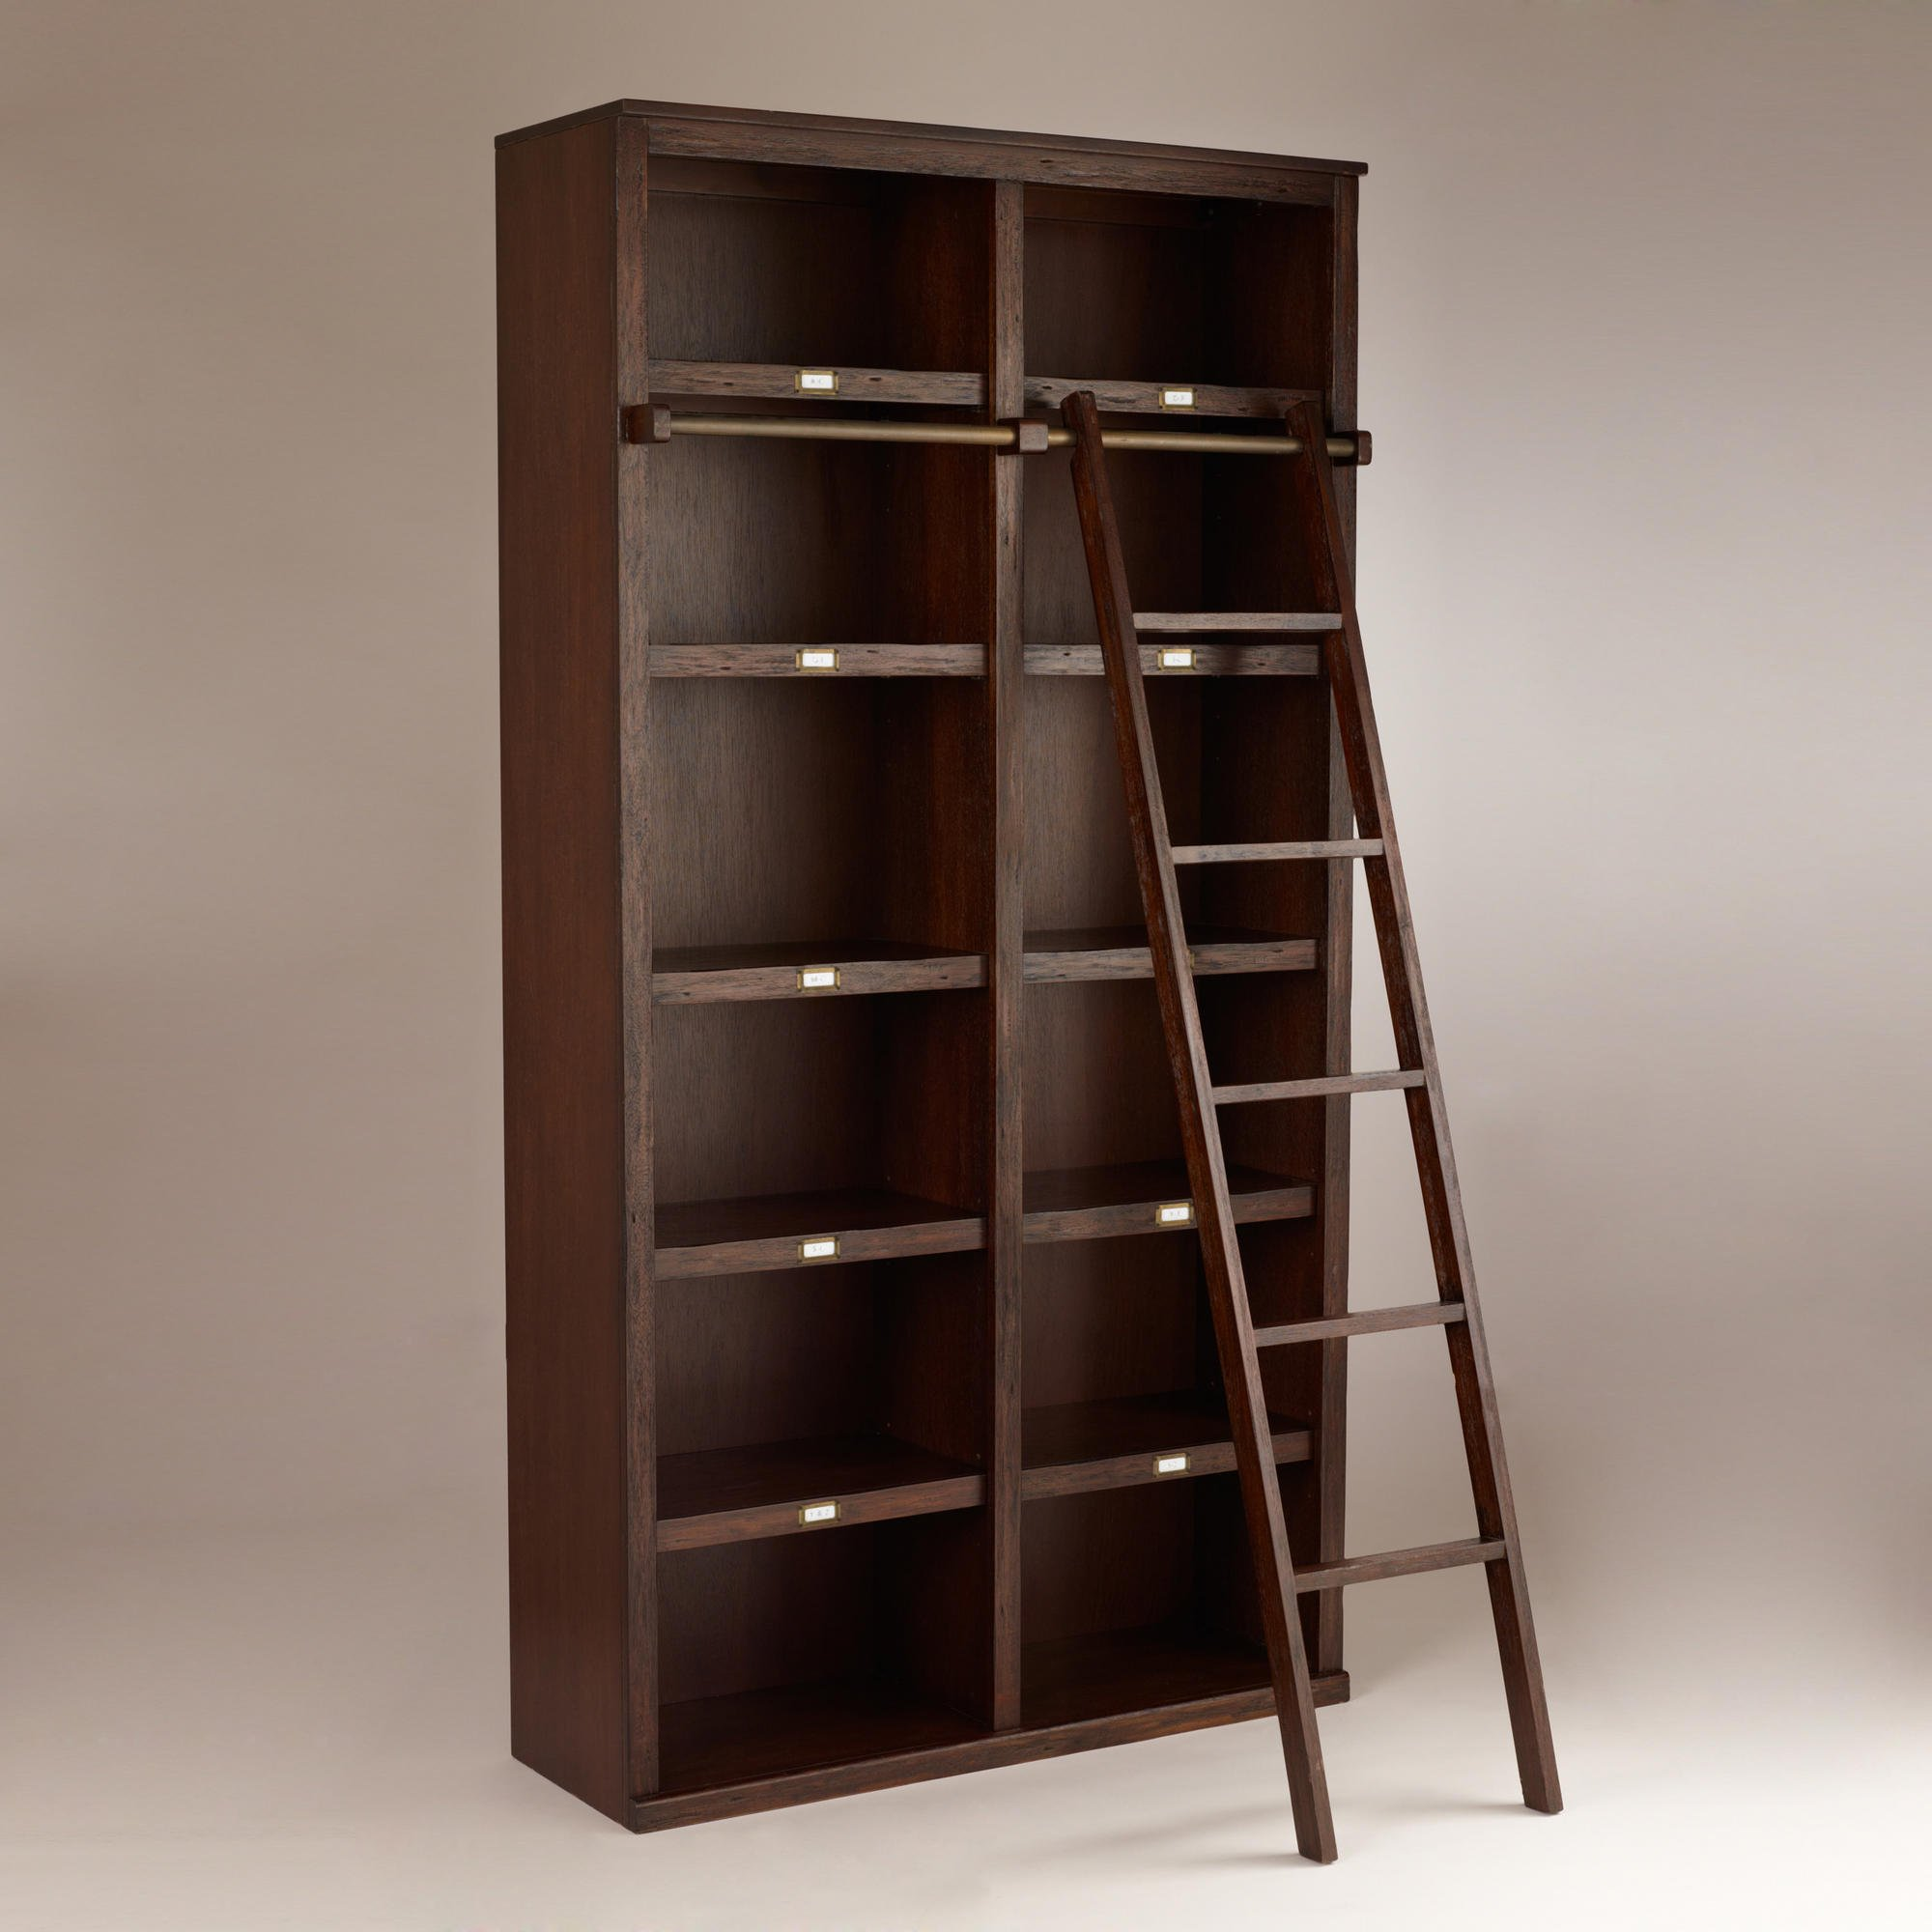 House Bookshelf: Library Bookcases With Ladders